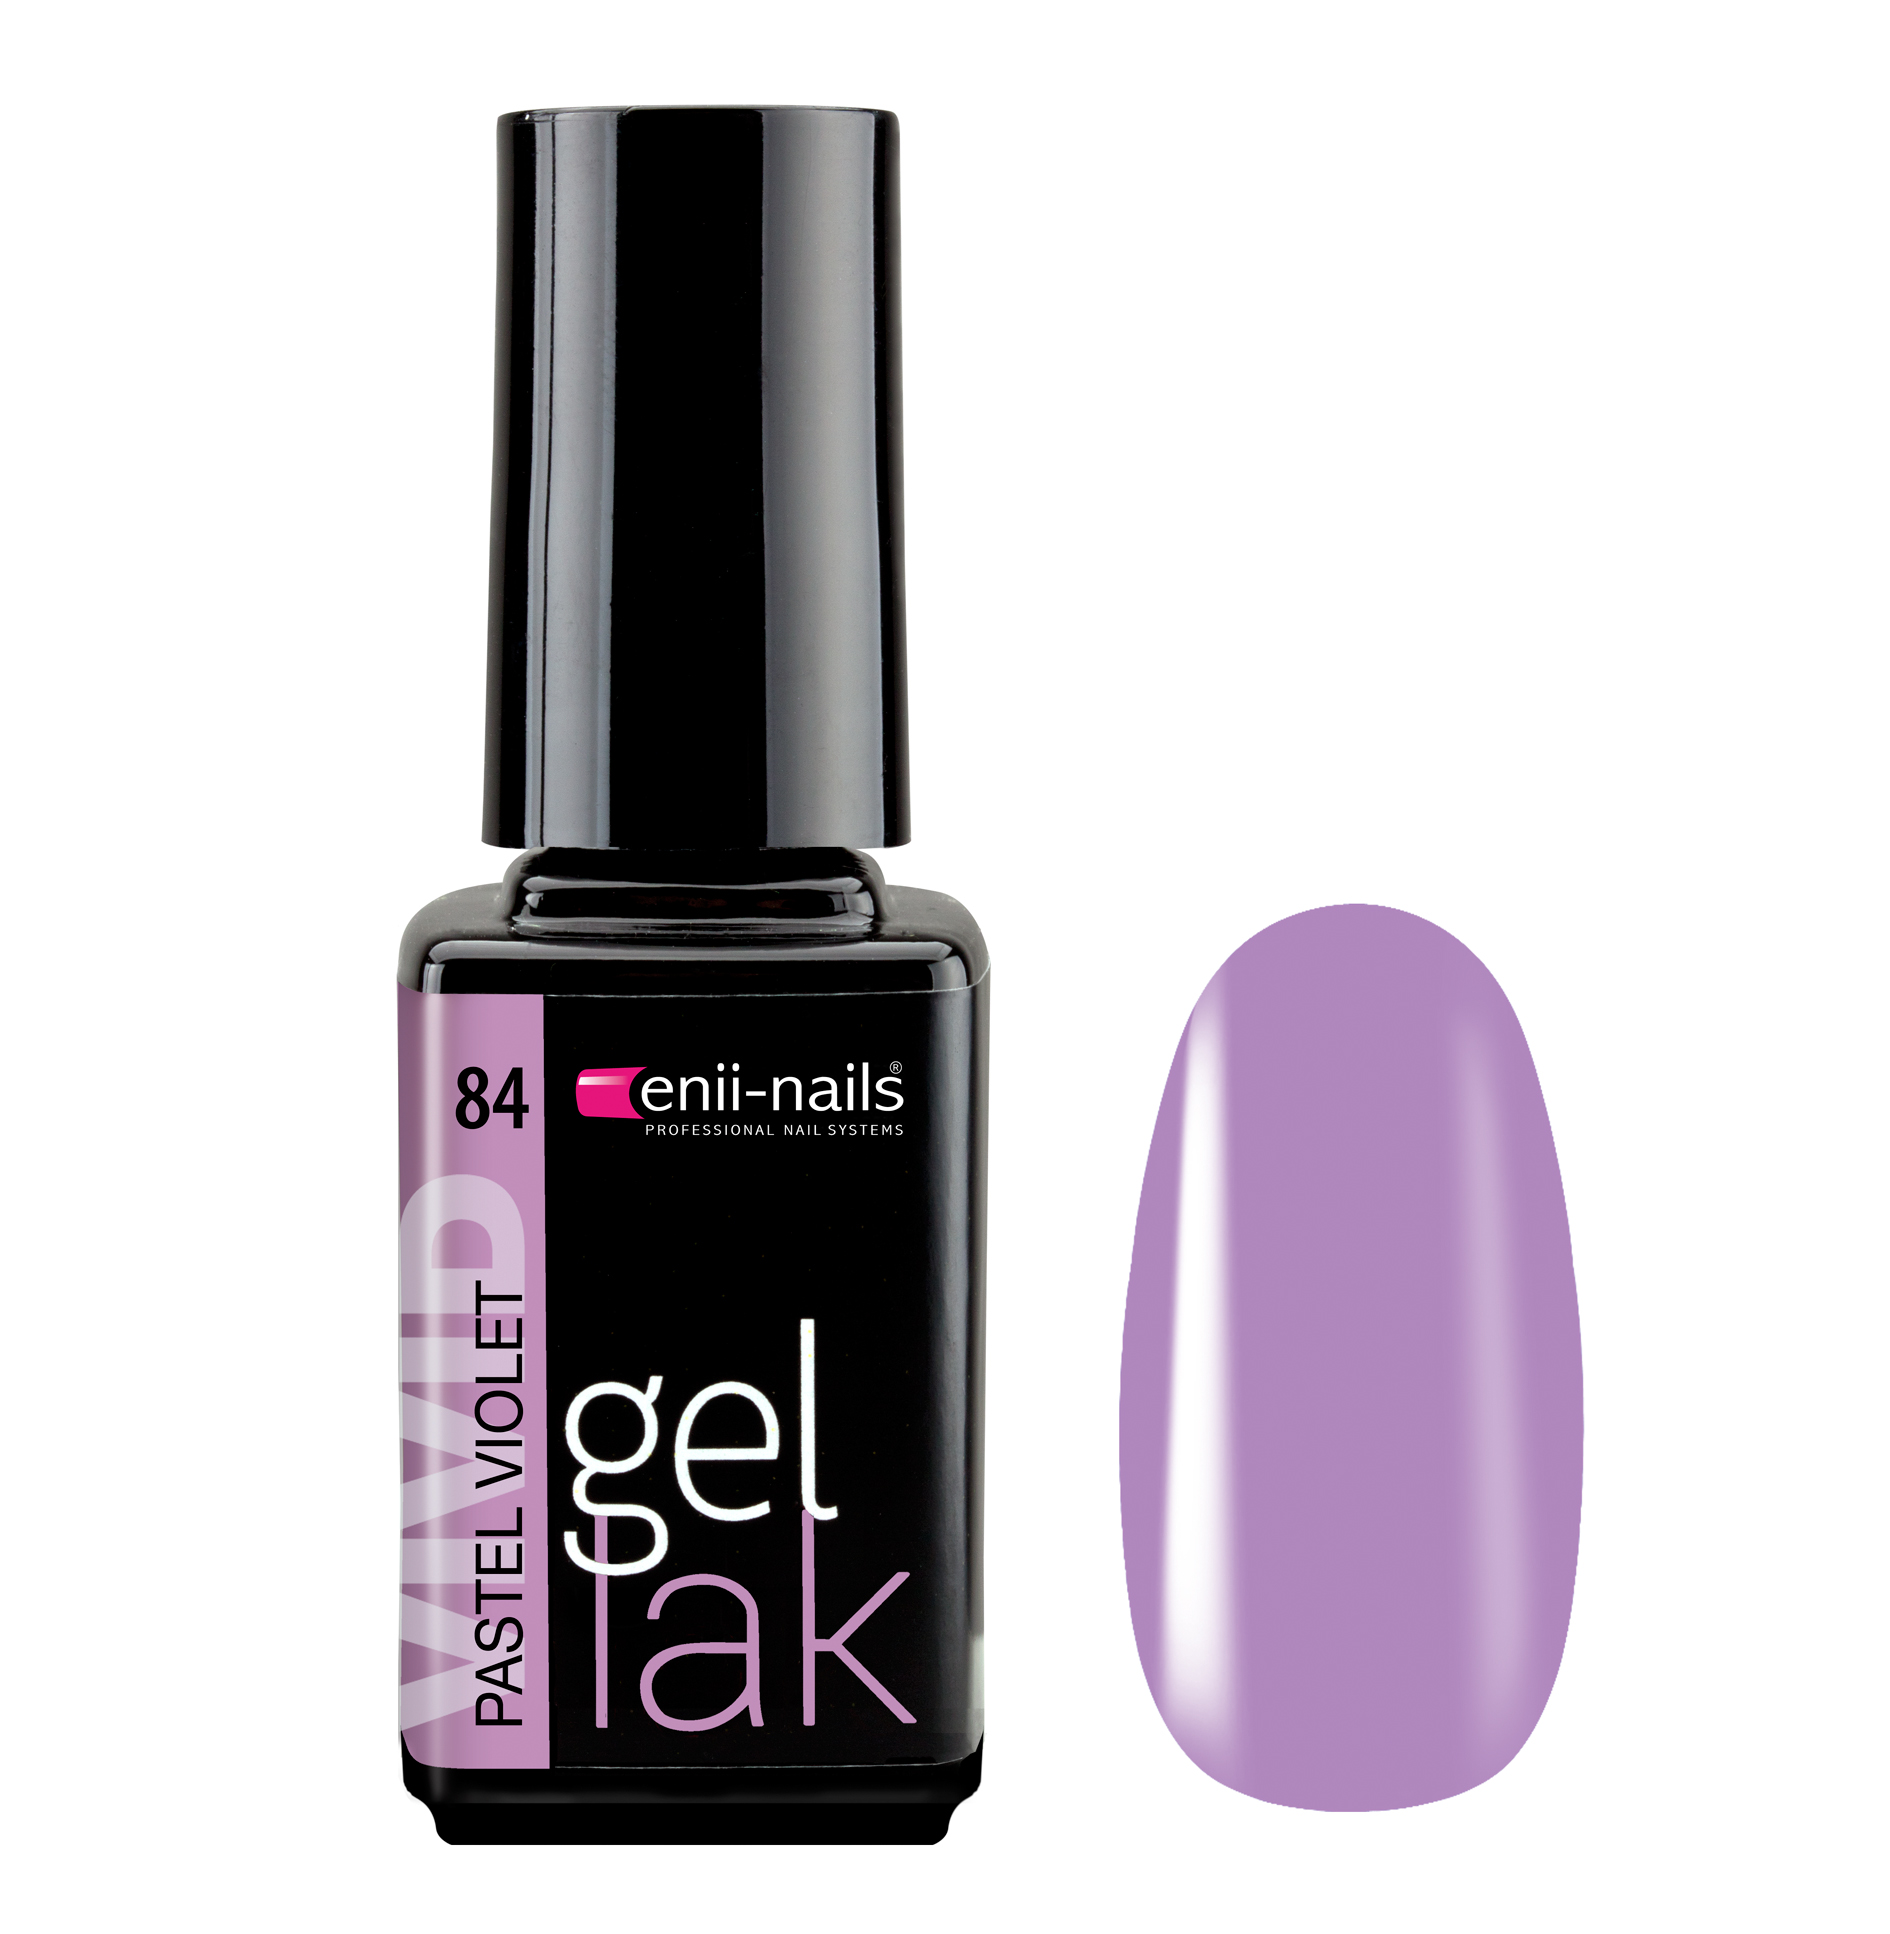 ENII-NAILS Gel lak Pastel Violet 5 ml